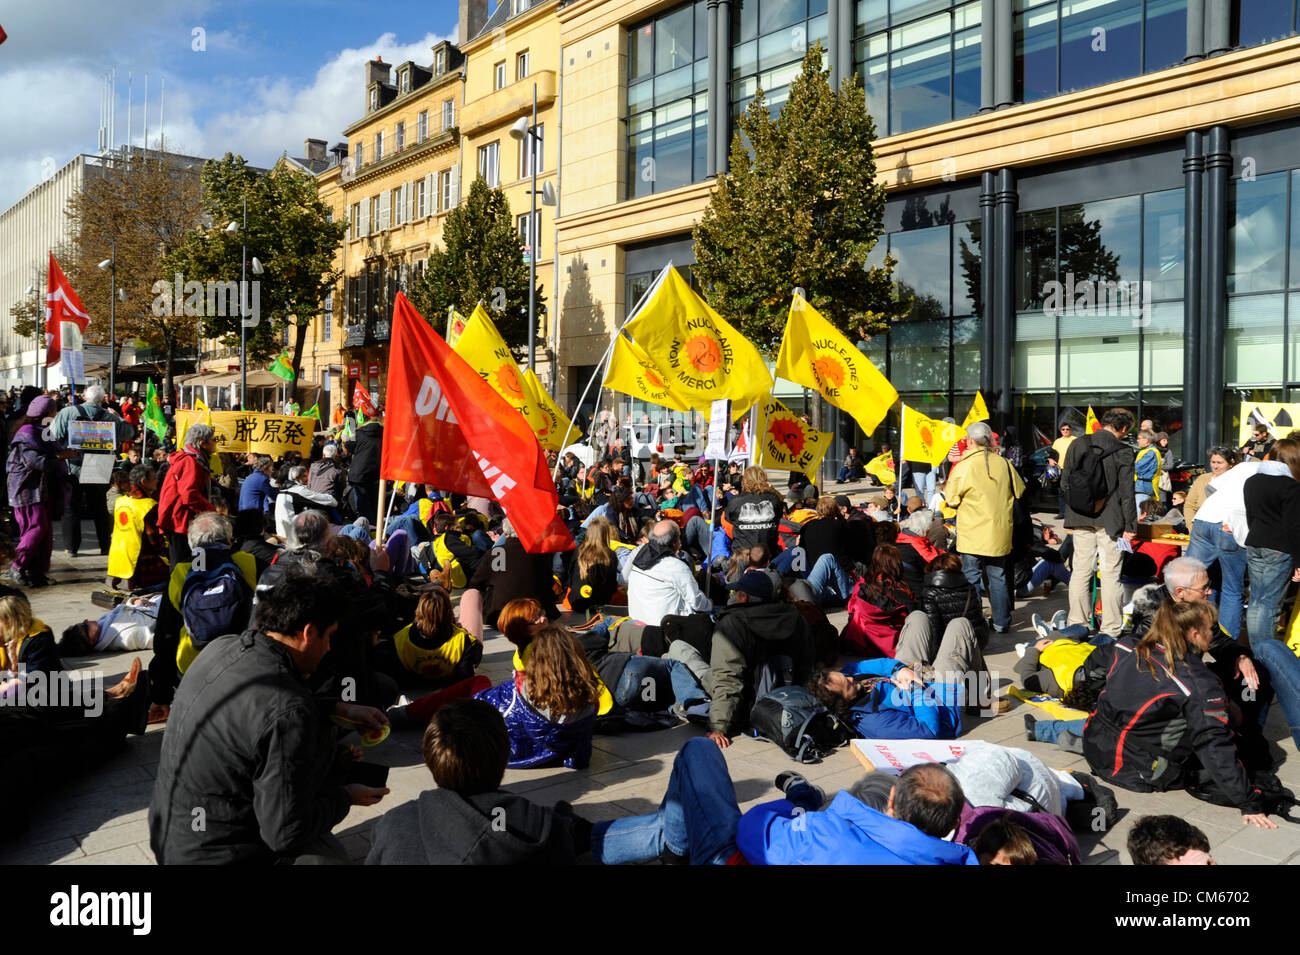 13.10.2012 Metz, France - About 600 people demonstrated in the French City of Metz for the shutdown of the nuclear Stock Photo